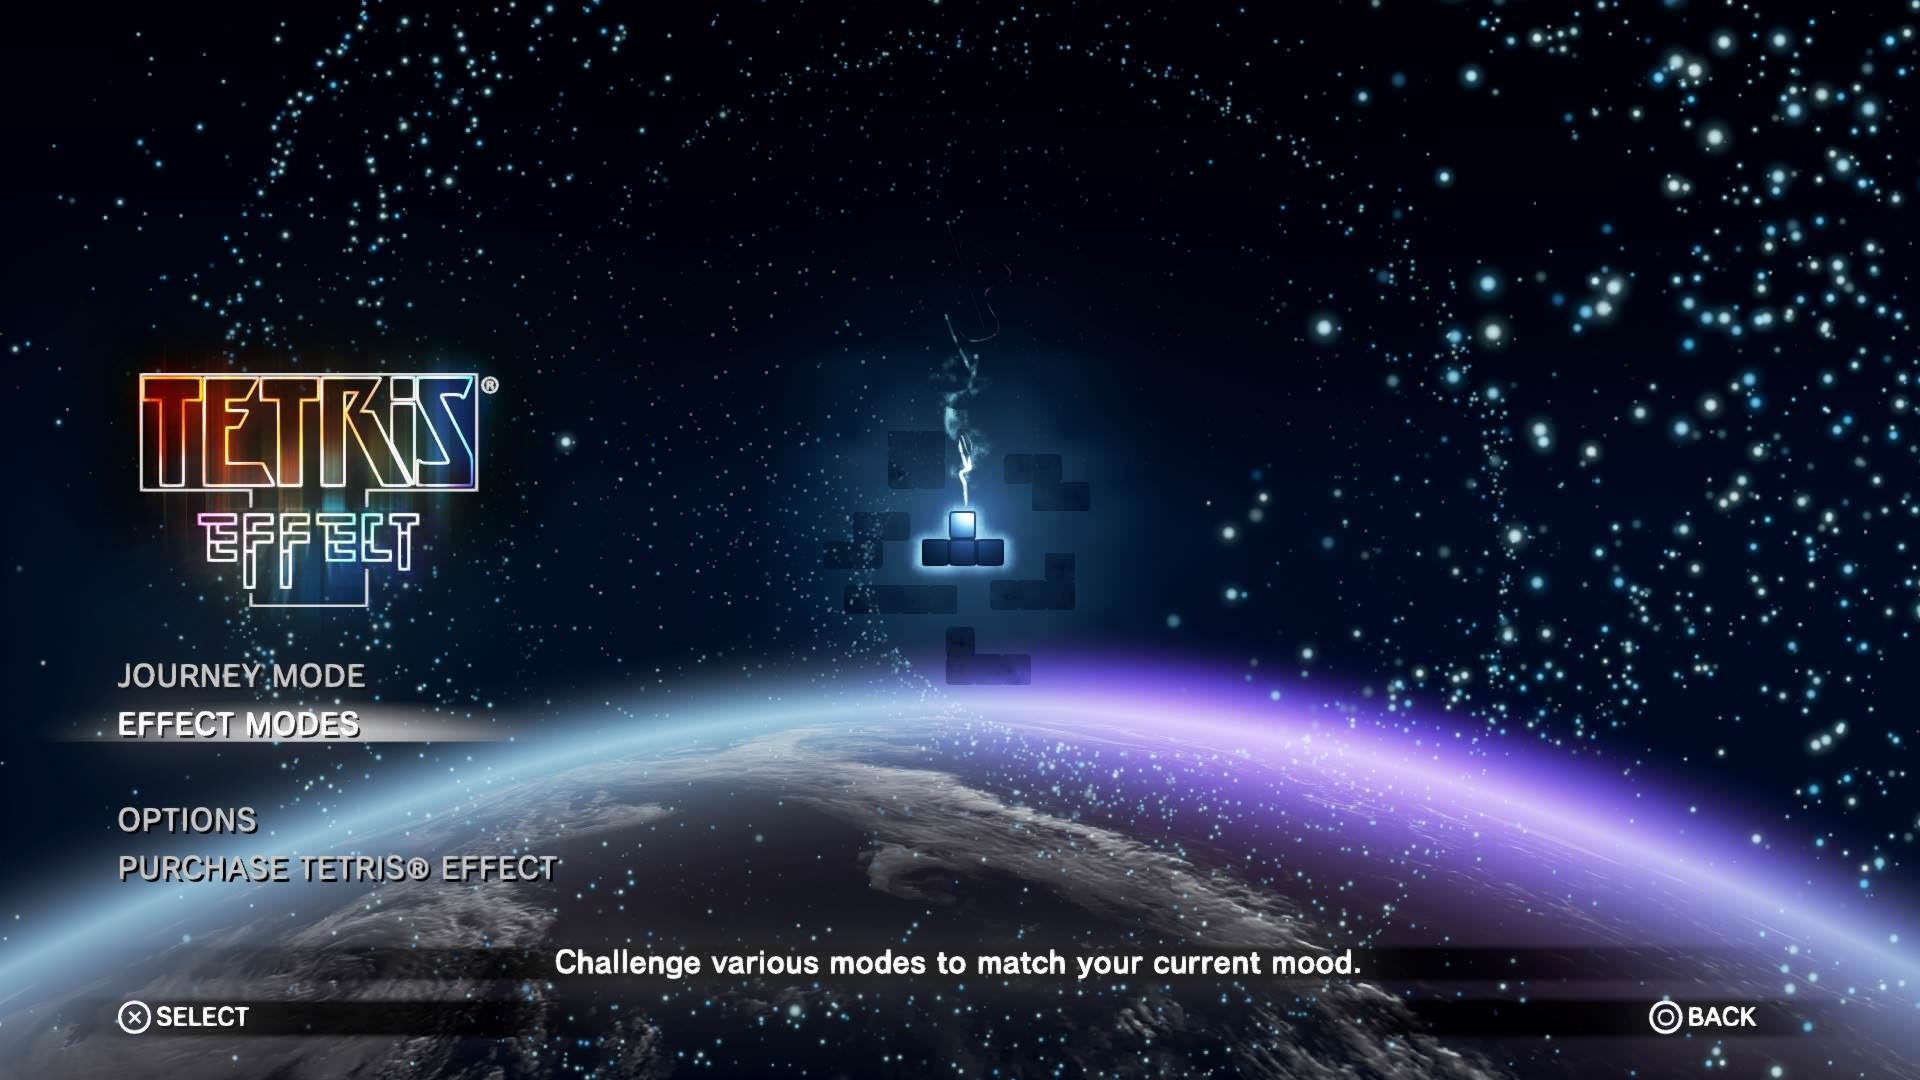 tetris effect menu wallpaper 67838